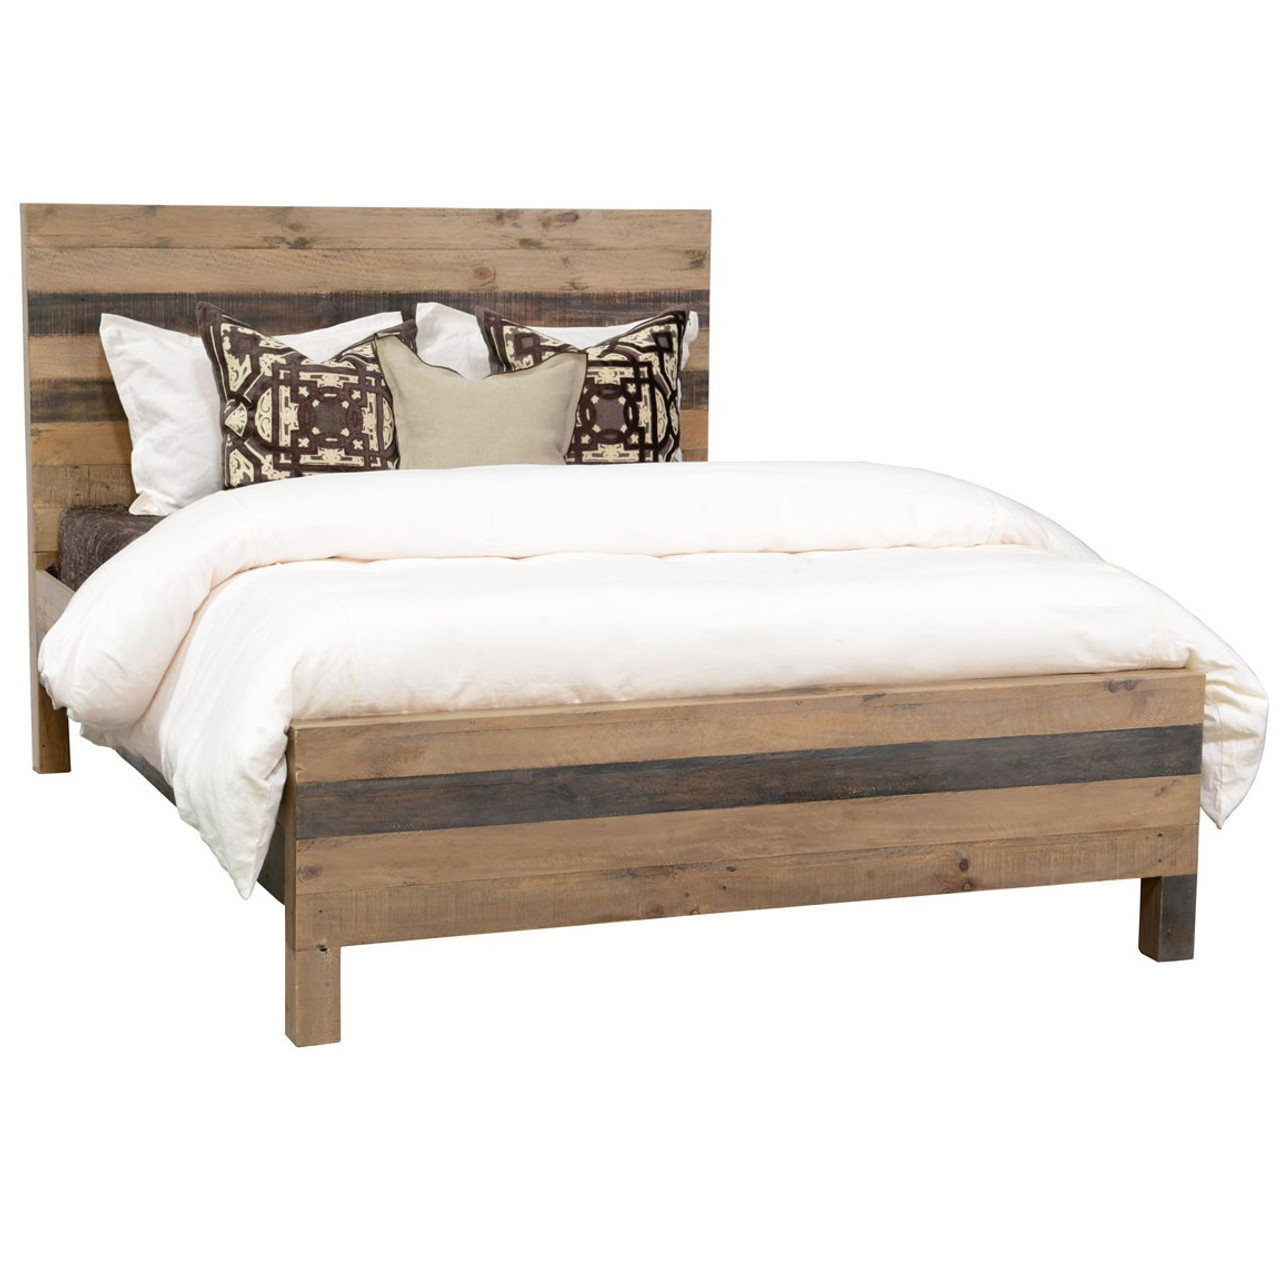 Queen Bed Sale Farmhouse Rustic Wood Platform Queen Bed